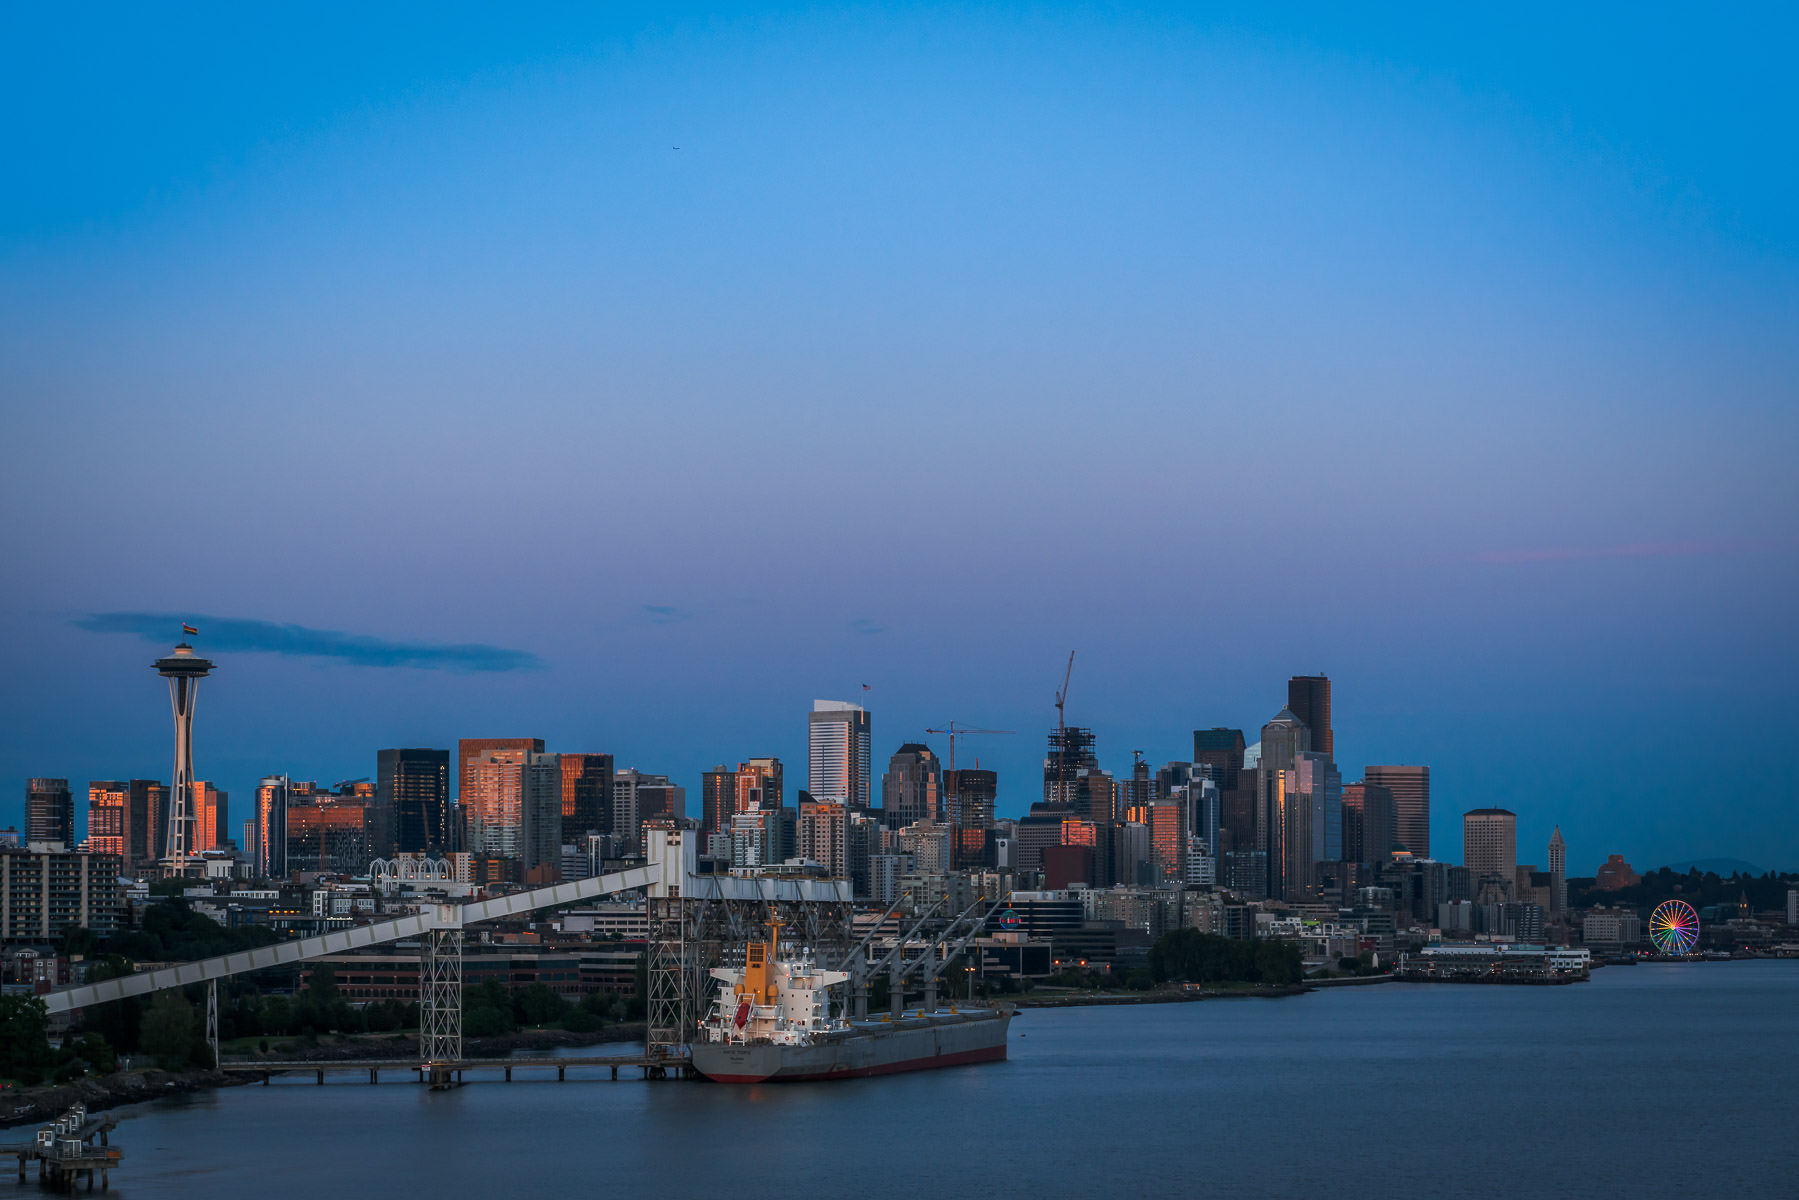 The last light of day illuminates the Seattle skyline.